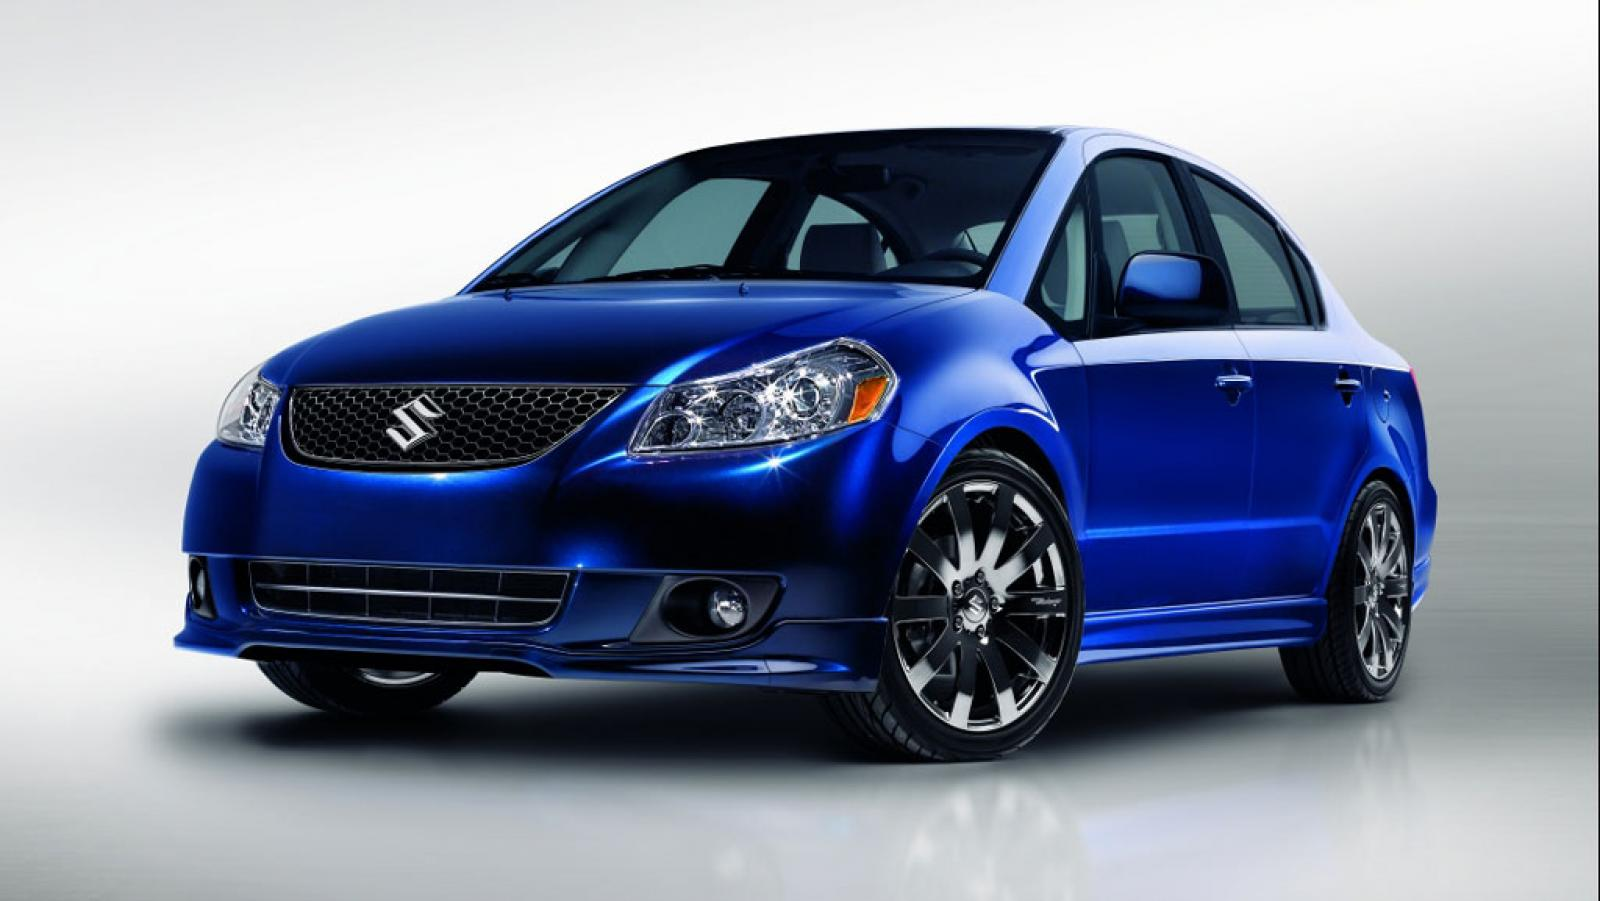 2008 suzuki sx4 information and photos zombiedrive. Black Bedroom Furniture Sets. Home Design Ideas